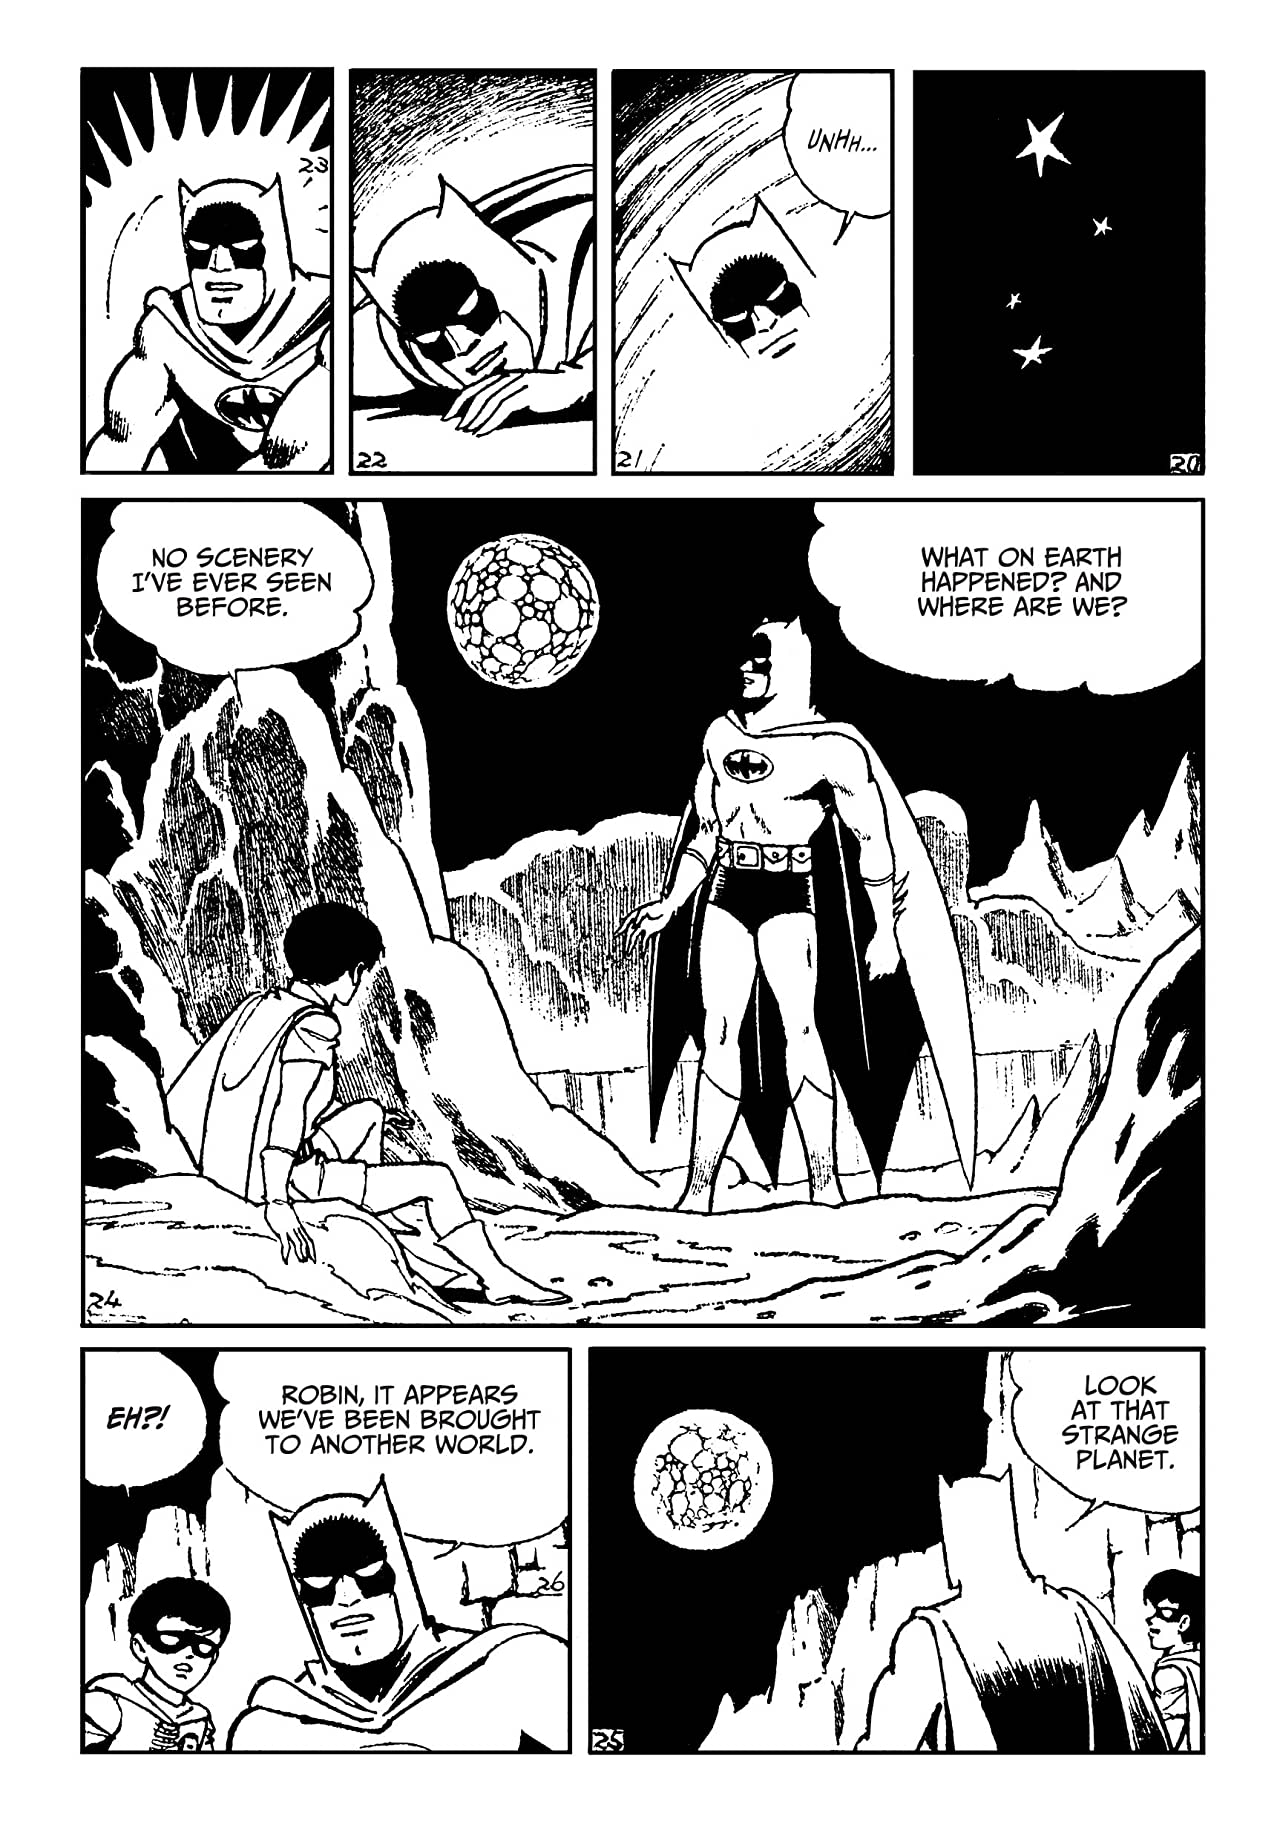 Batman: The Jiro Kuwata Batmanga #52